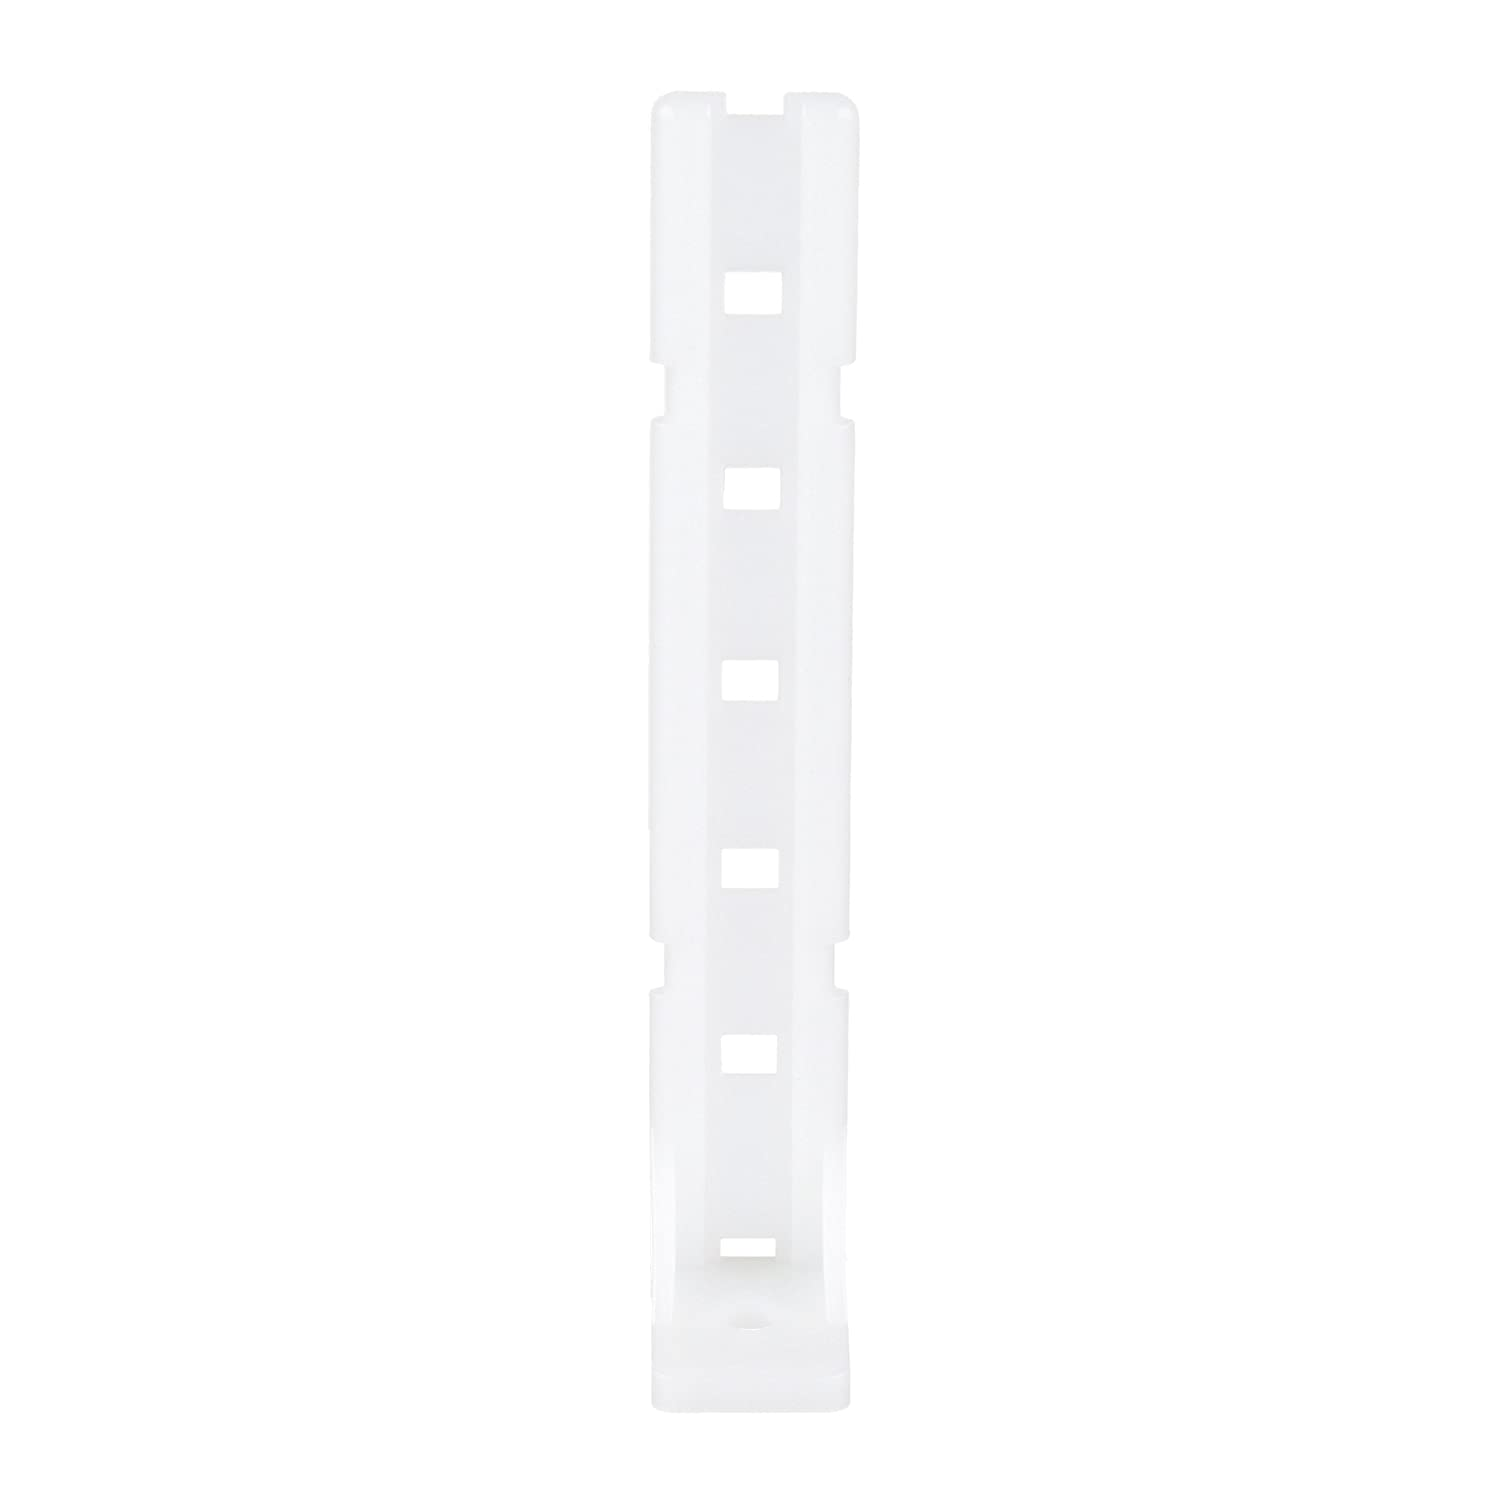 Panduit PP1S S10 X Pan Post Standoff Cable Tie Mount Nylon 6.6 2 Inch Natural 10 Pack